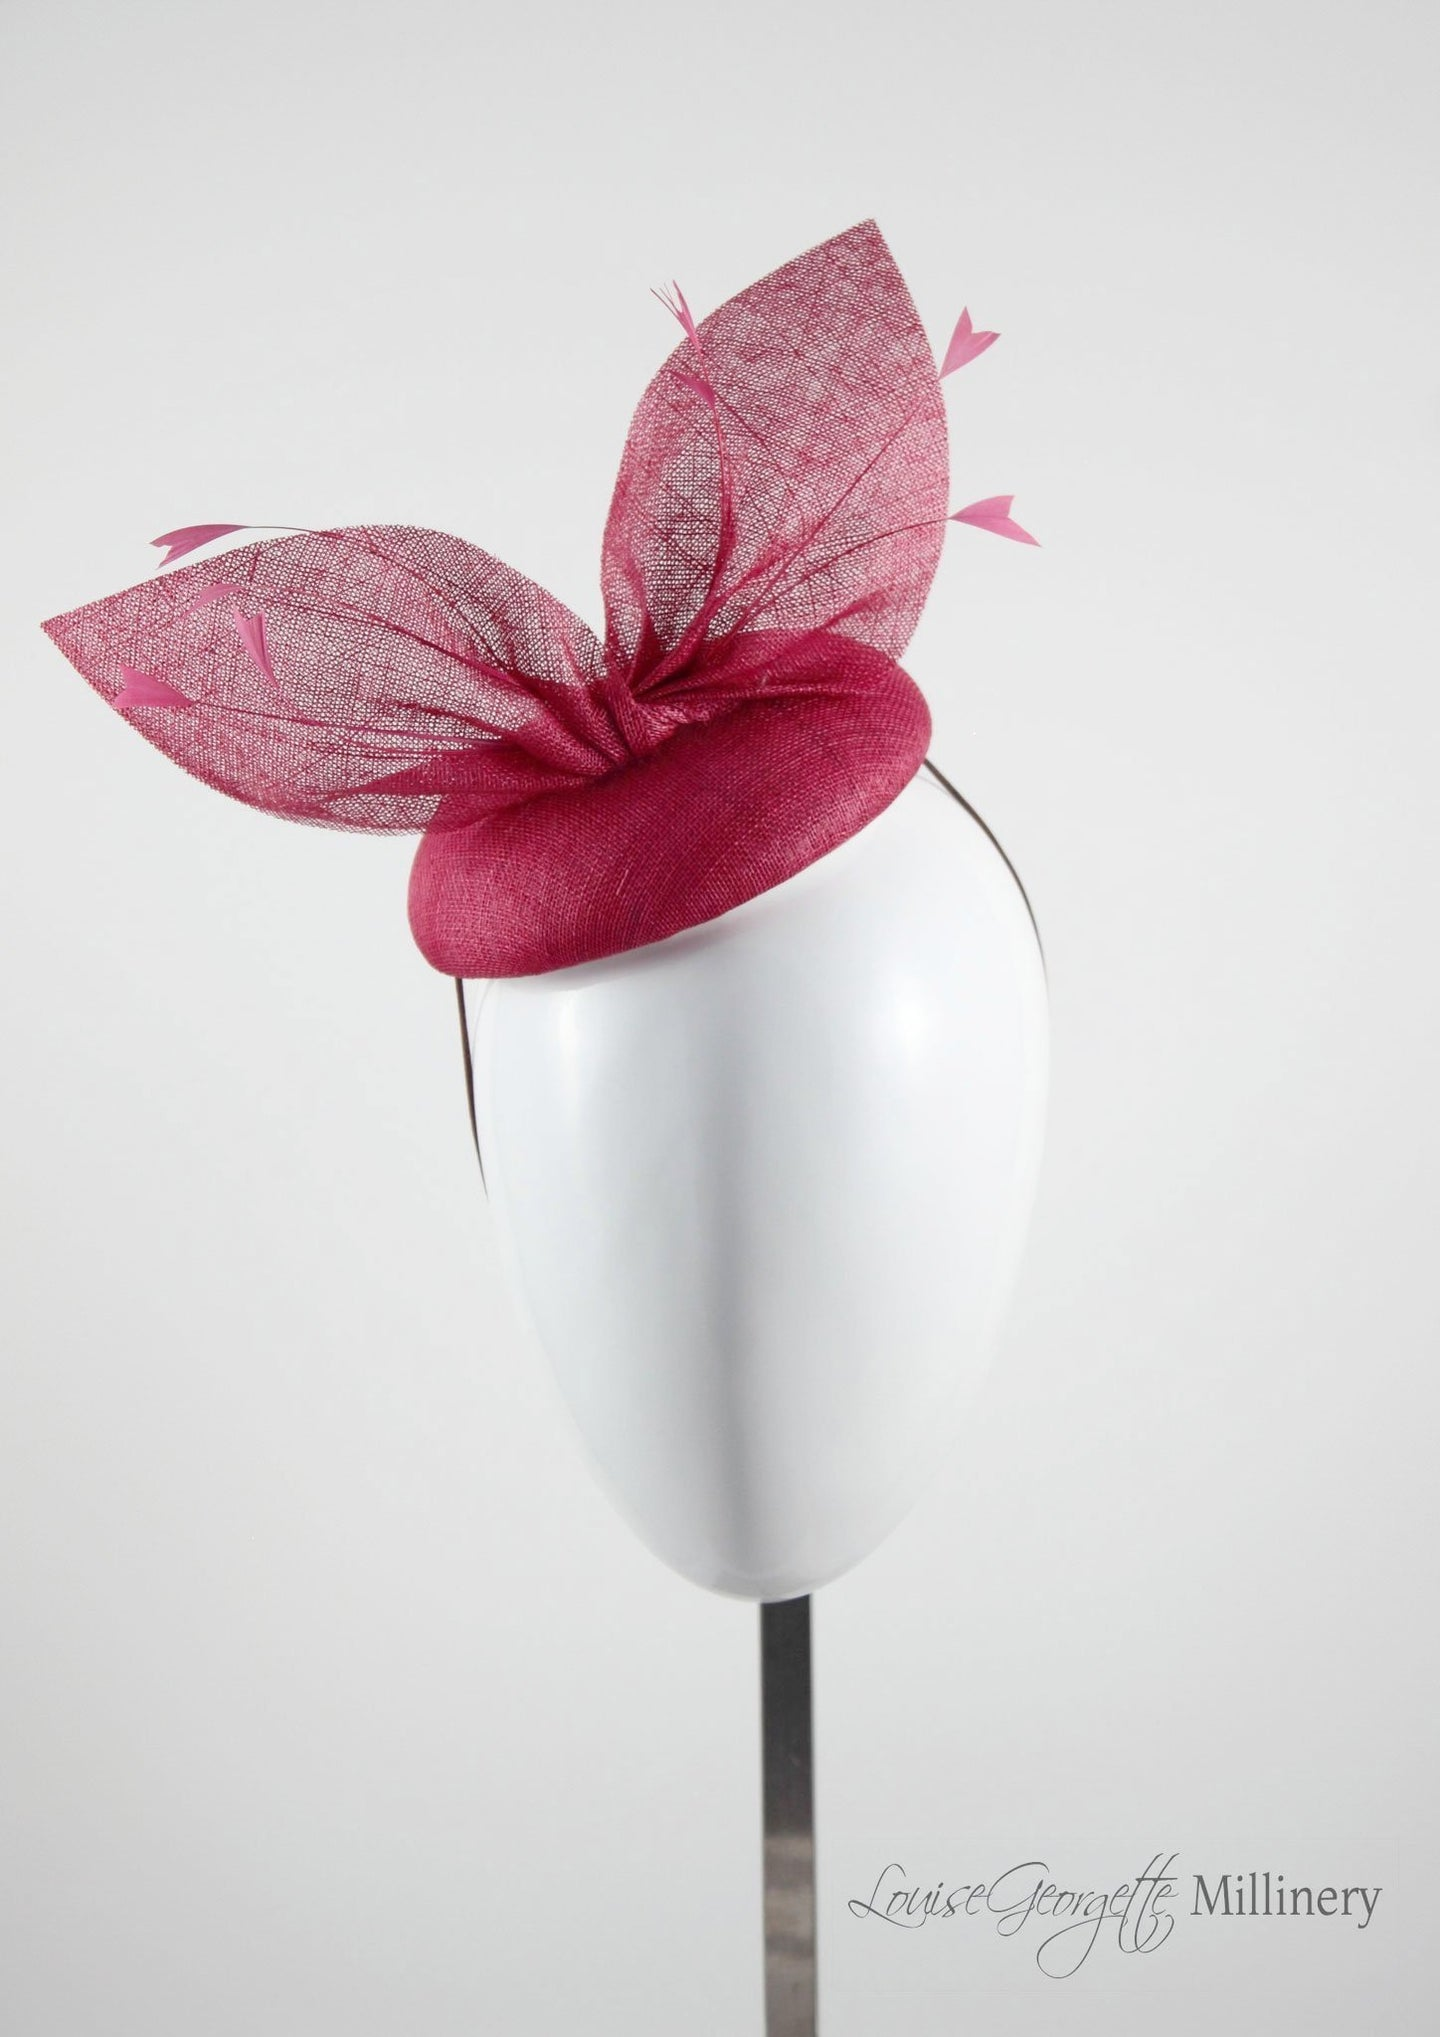 Red straw bow hat with feathers.Front view. Royal Ascot, Royal enclosure approved. Millinery handmade in London. Louise Georgette Millinery